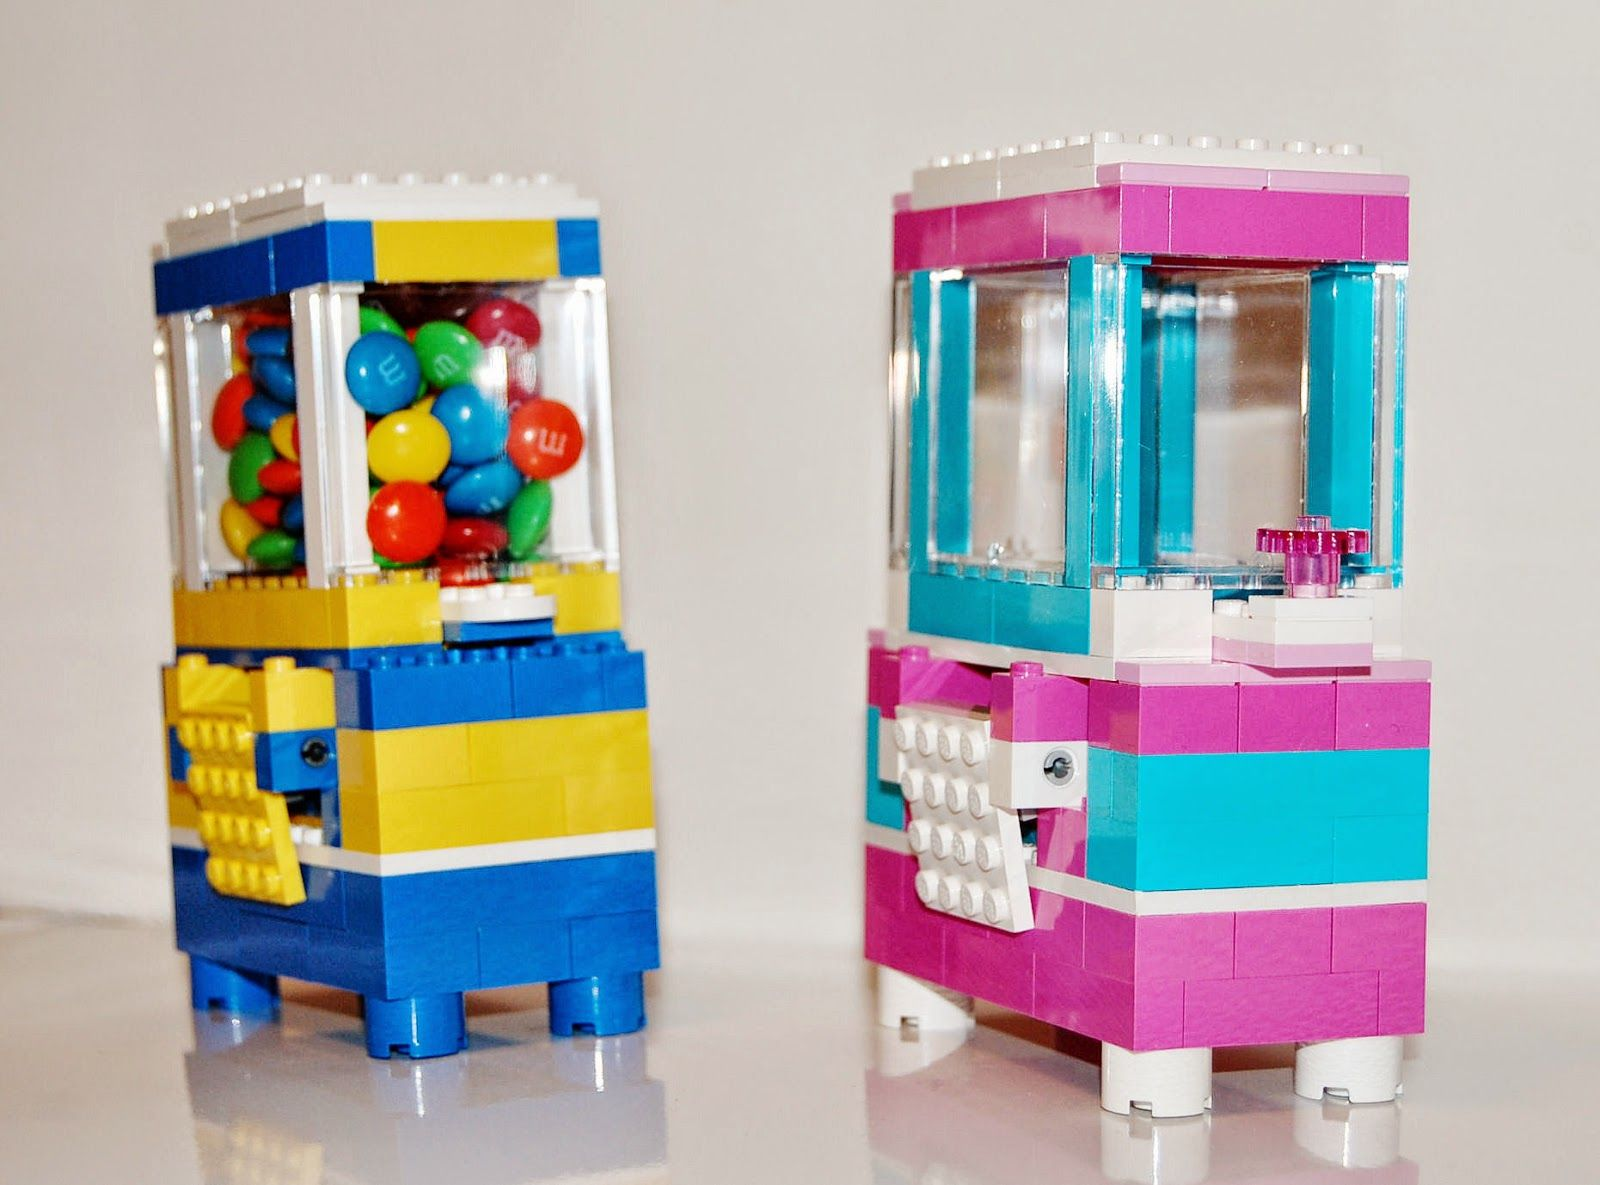 I Just Love Pinterest I Came Across A Pin Featuring A Lego Candy